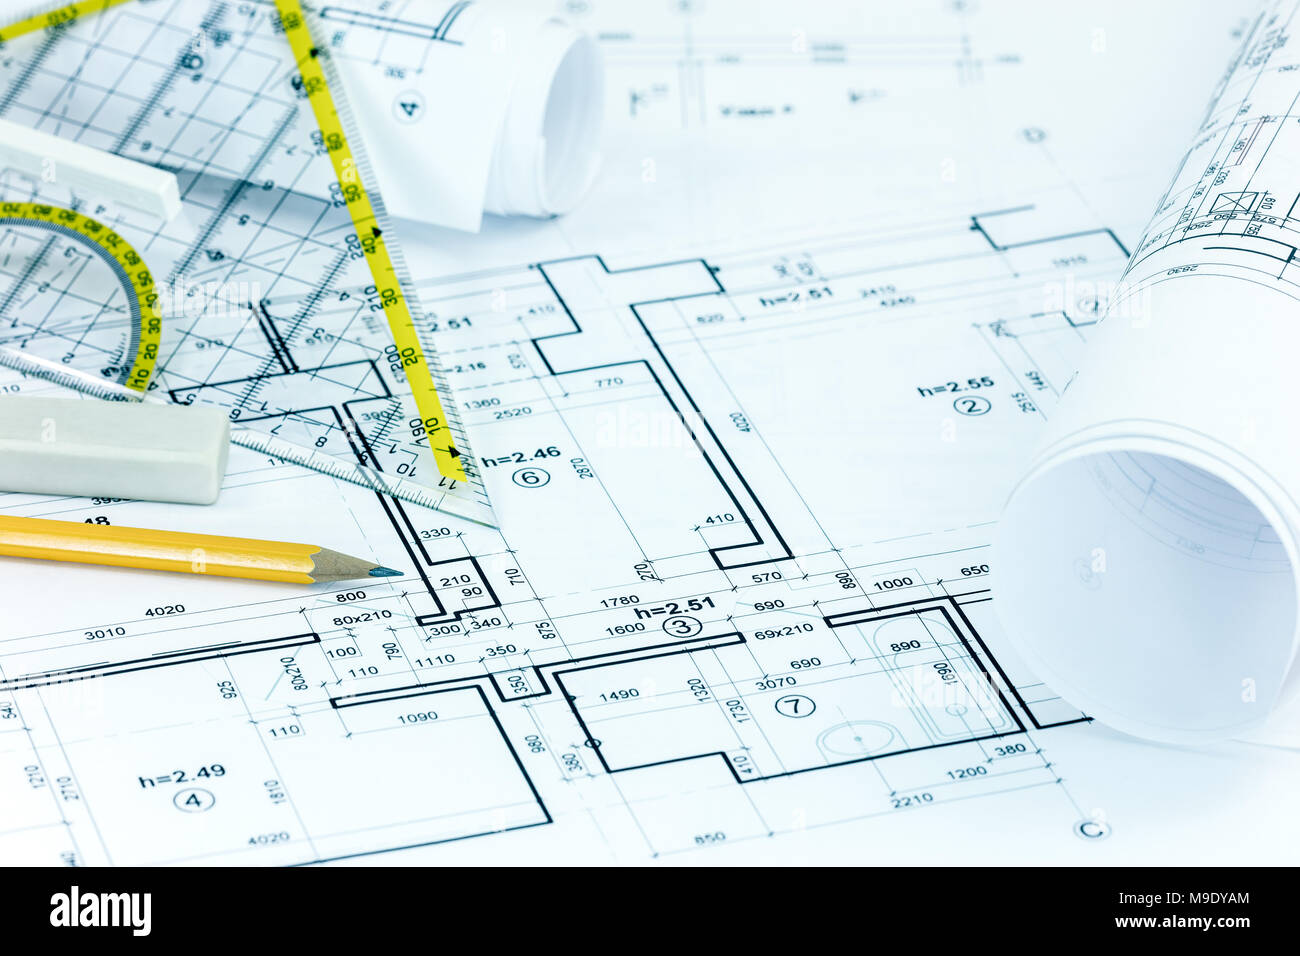 blueprint rolls with architectural plans and drawing instruments on